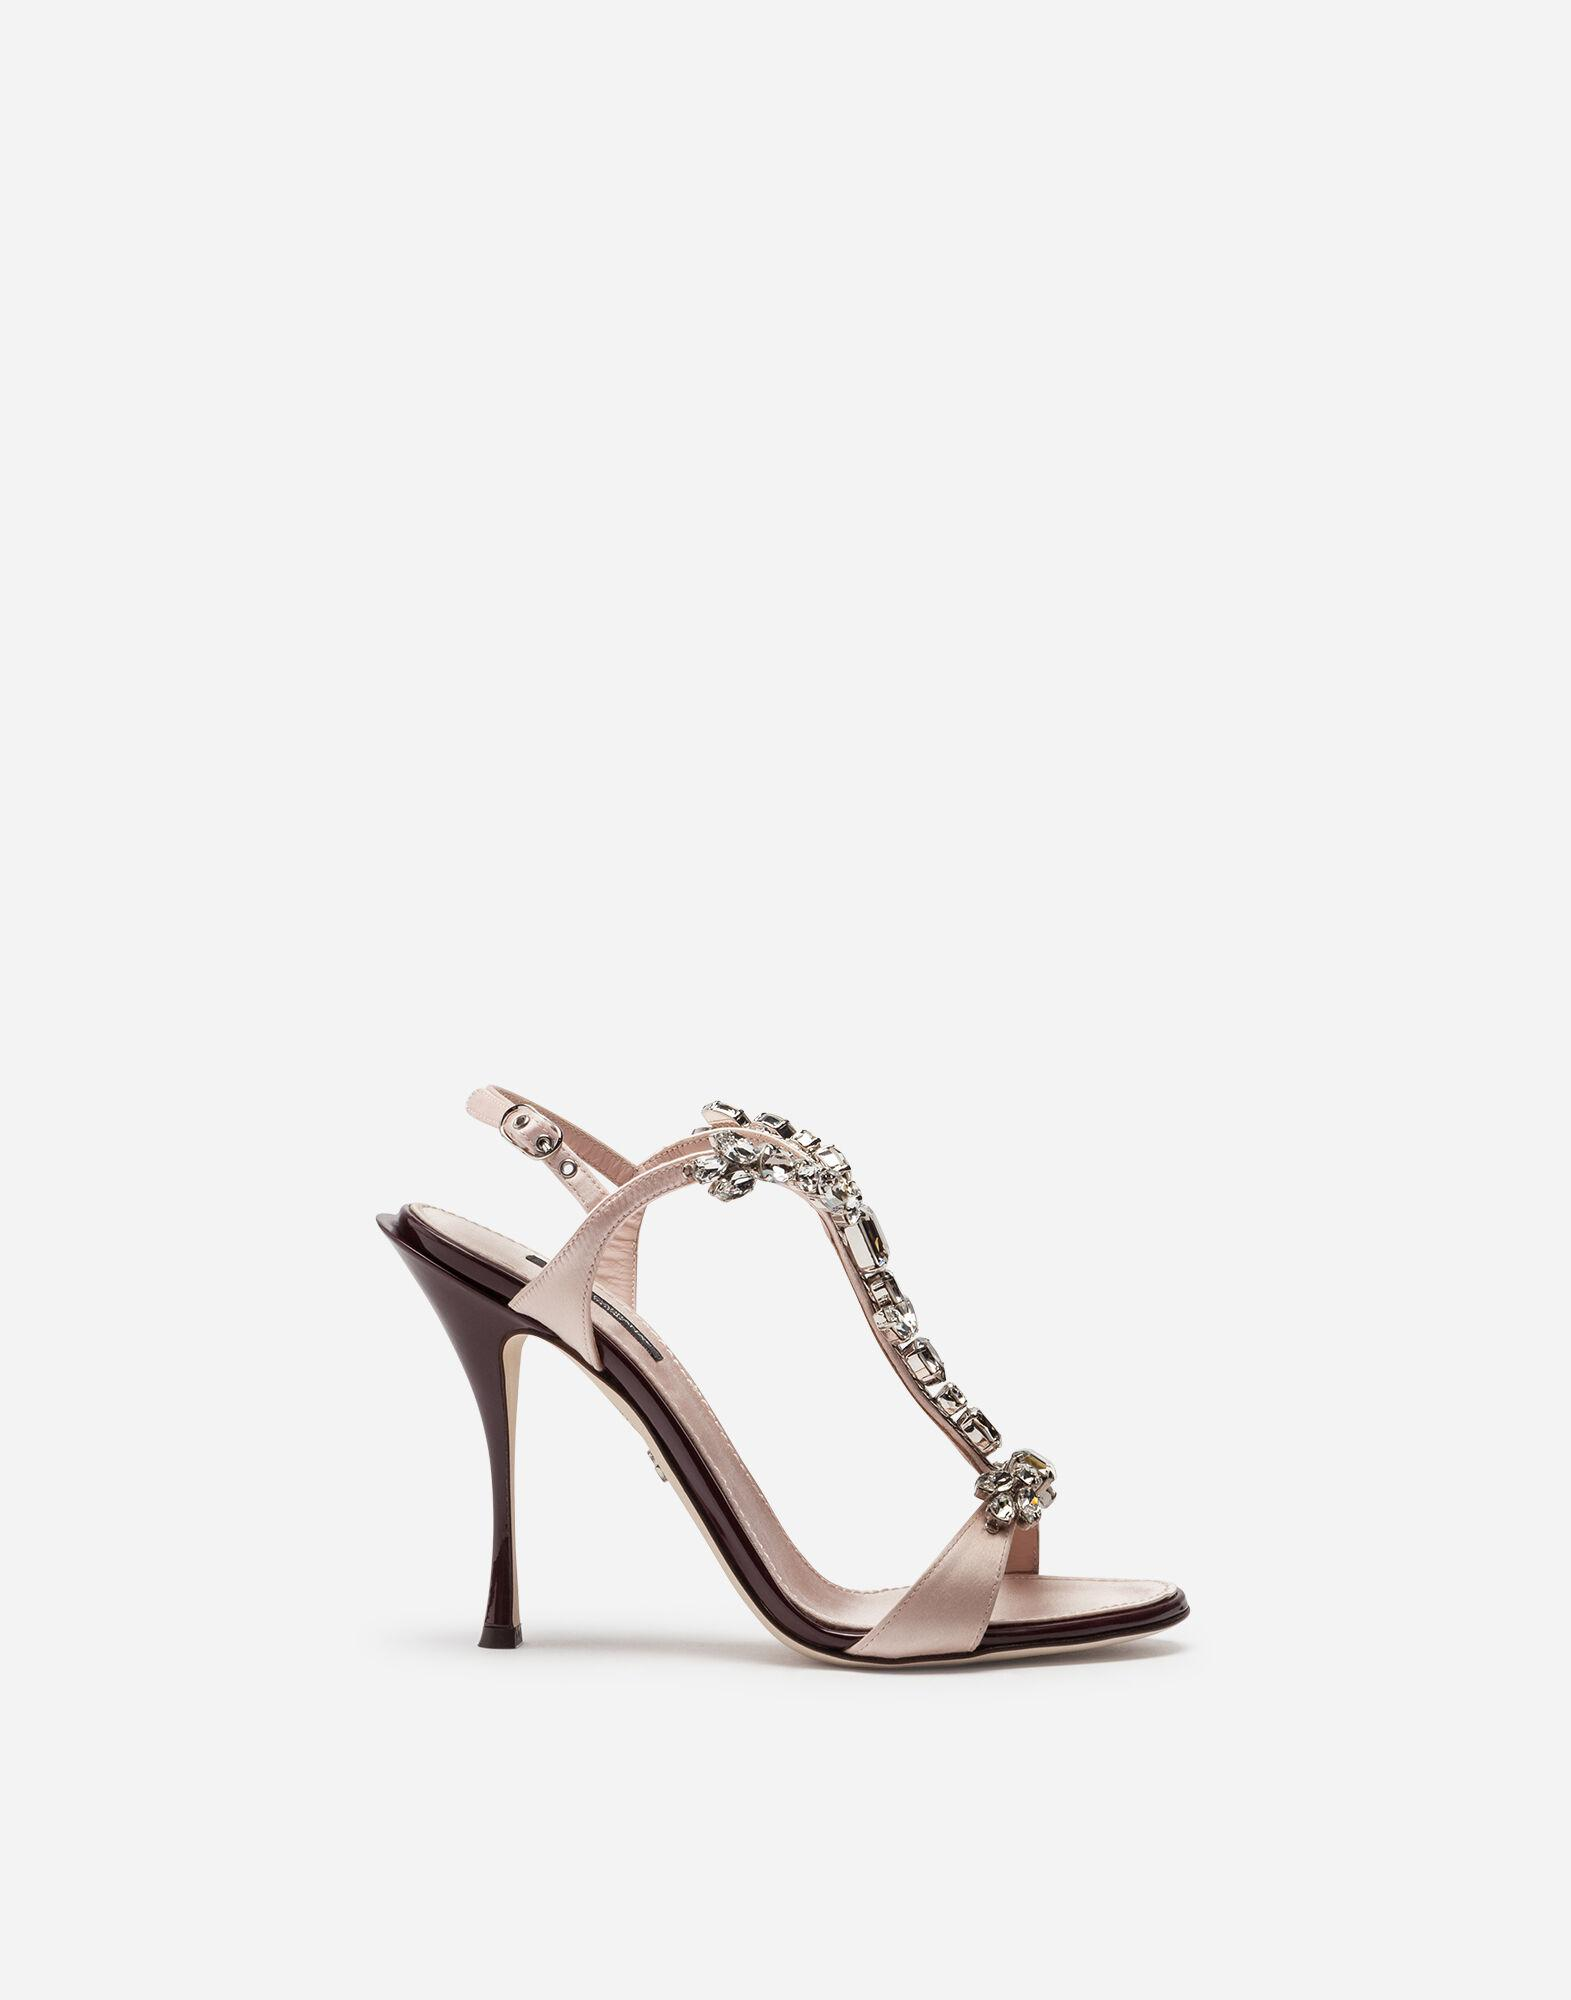 Satin and patent leather sandals with bejeweled detail